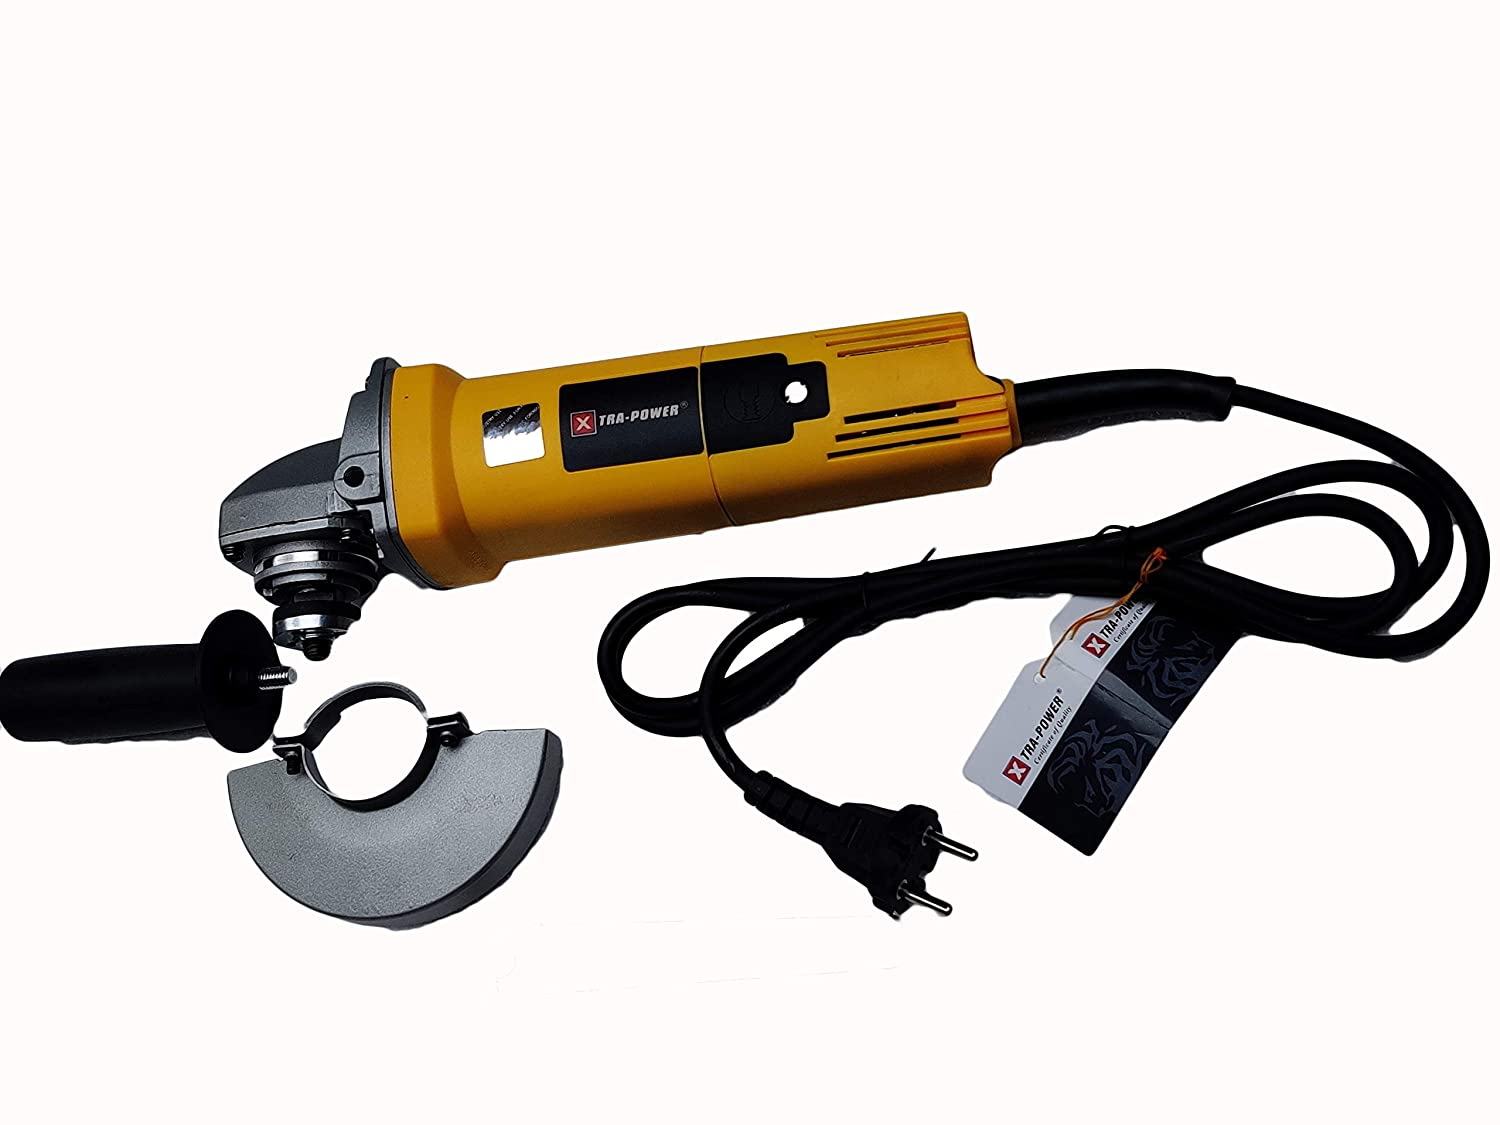 Xtra Power XPT 100mm 850W Professional Angle Grinder